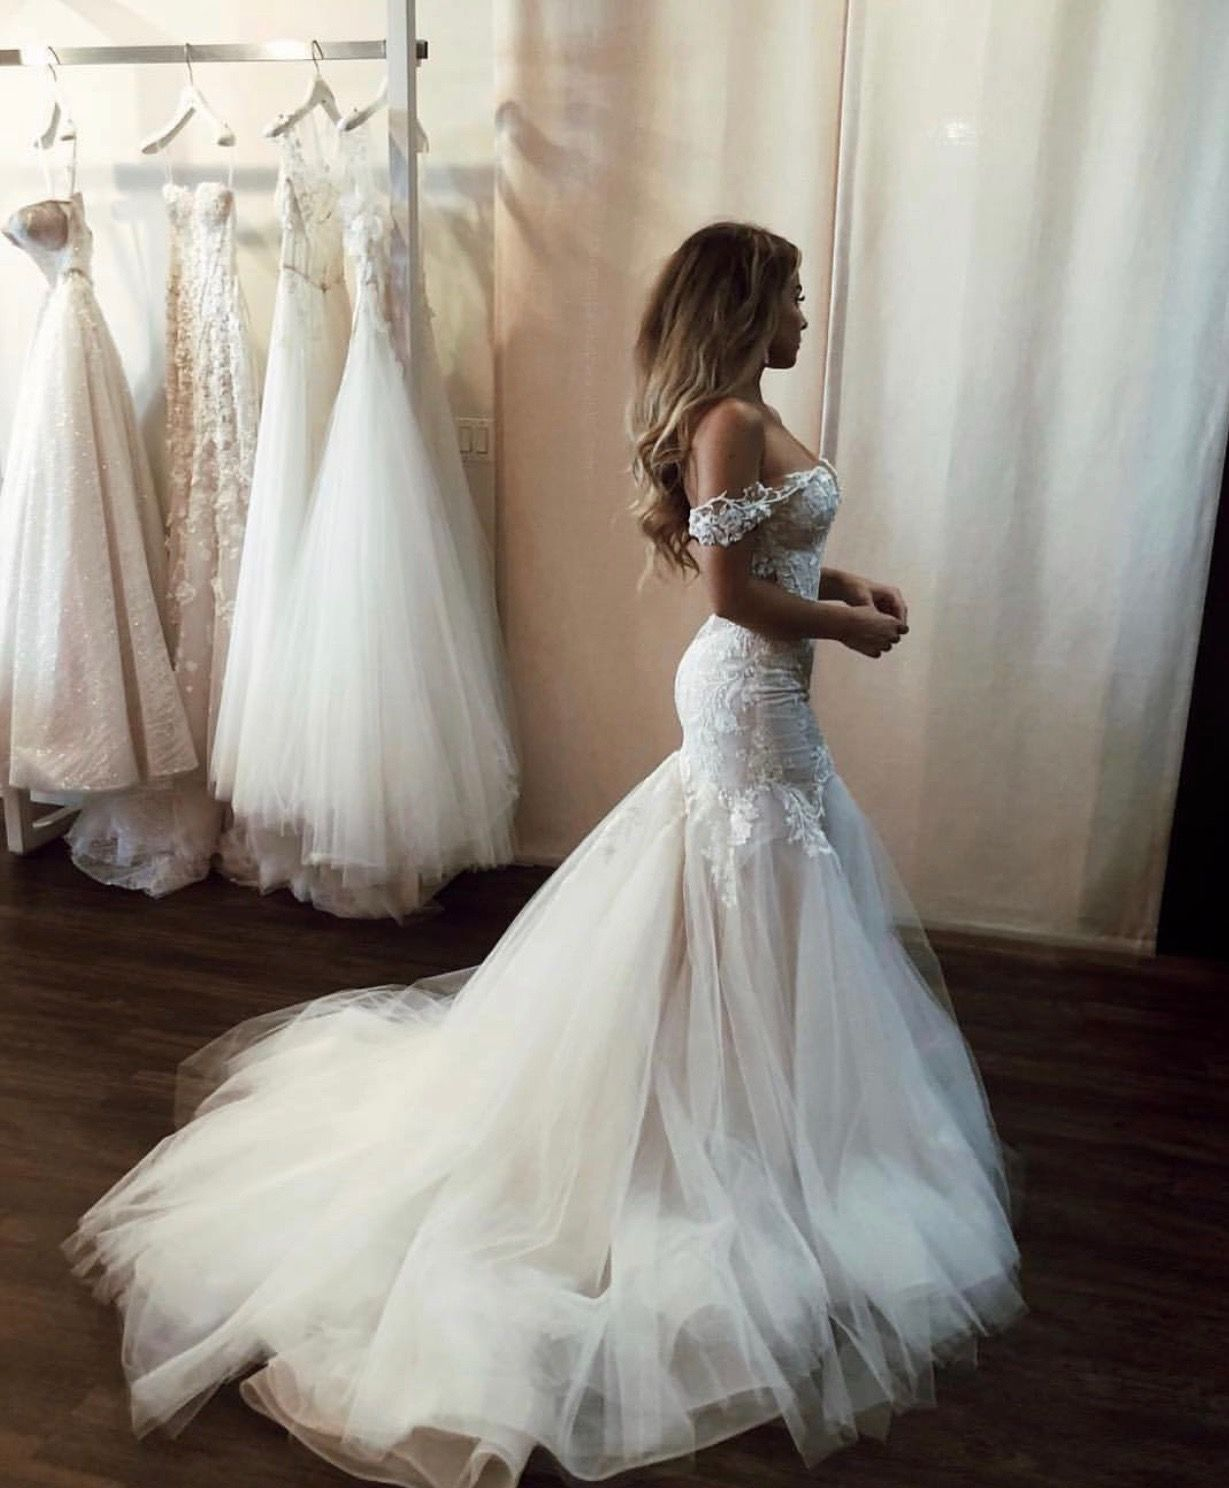 Pin By Alyssa Frazee On The Big Day Applique Wedding Dress Dream Wedding Dresses Wedding Dresses [ 1488 x 1229 Pixel ]